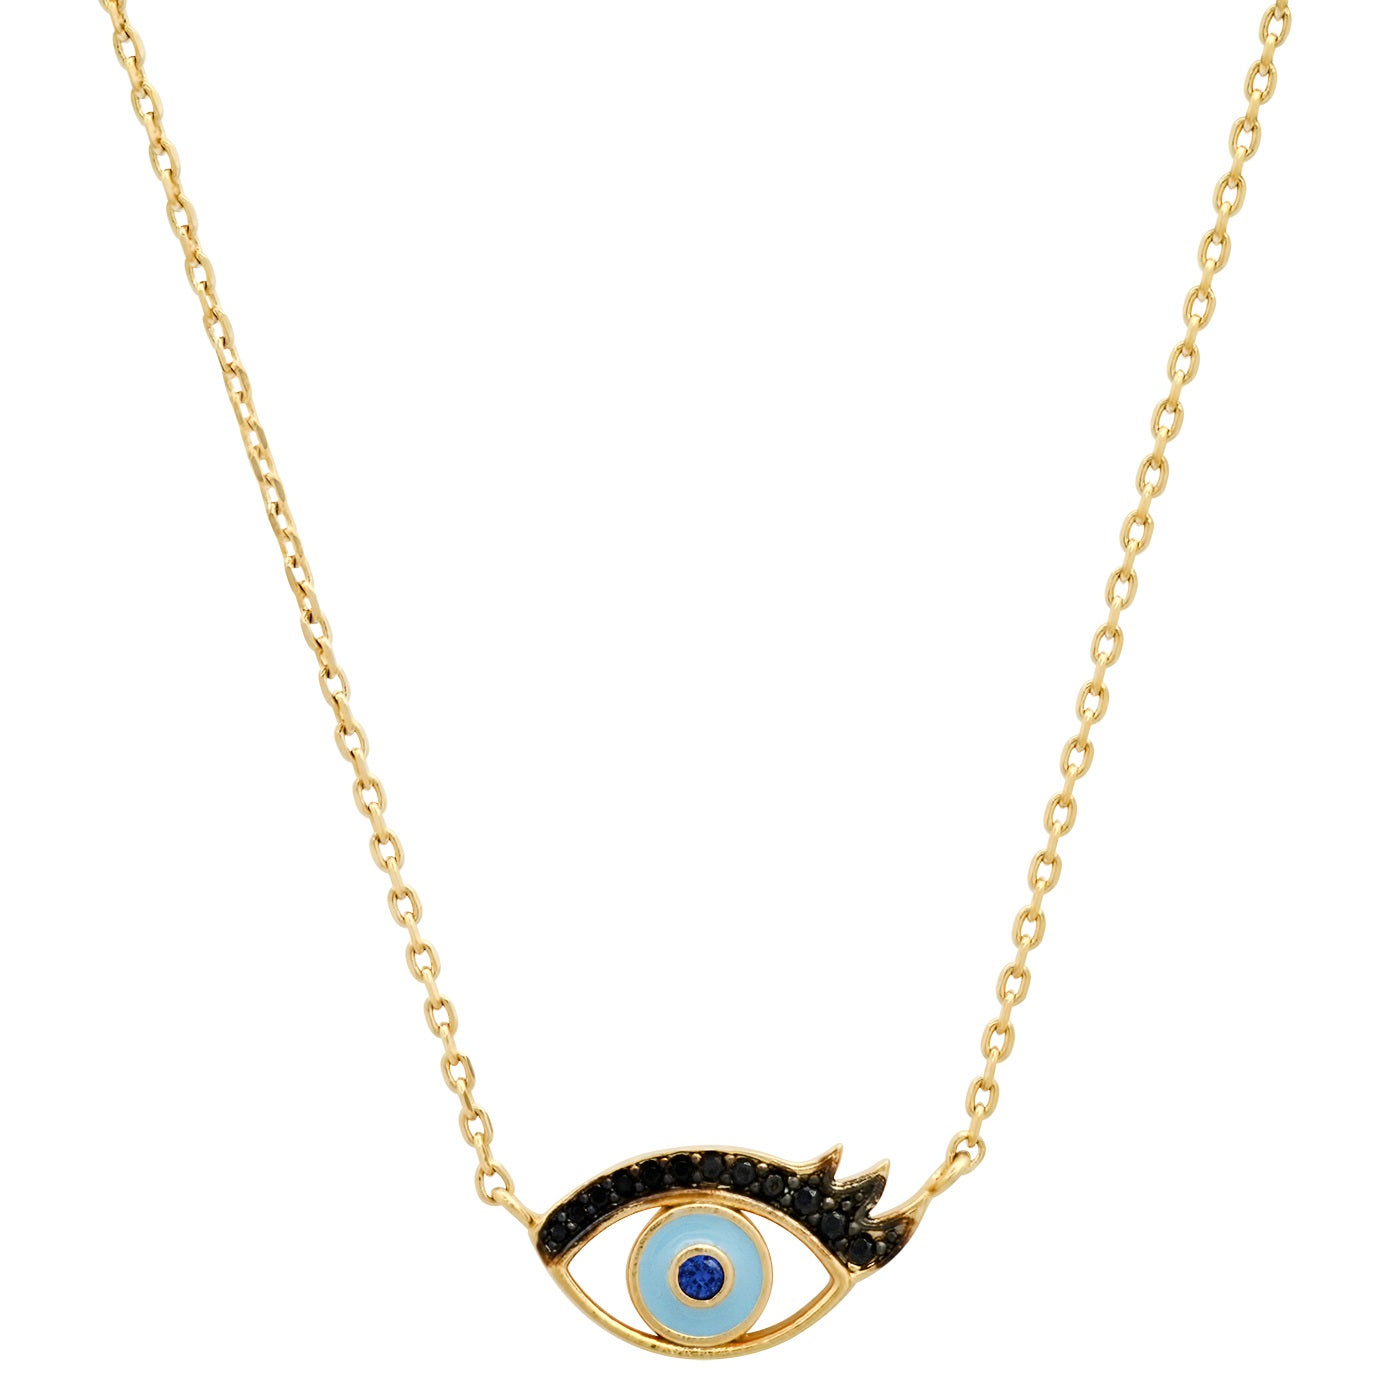 Enamel Eye with Lashes Pendant